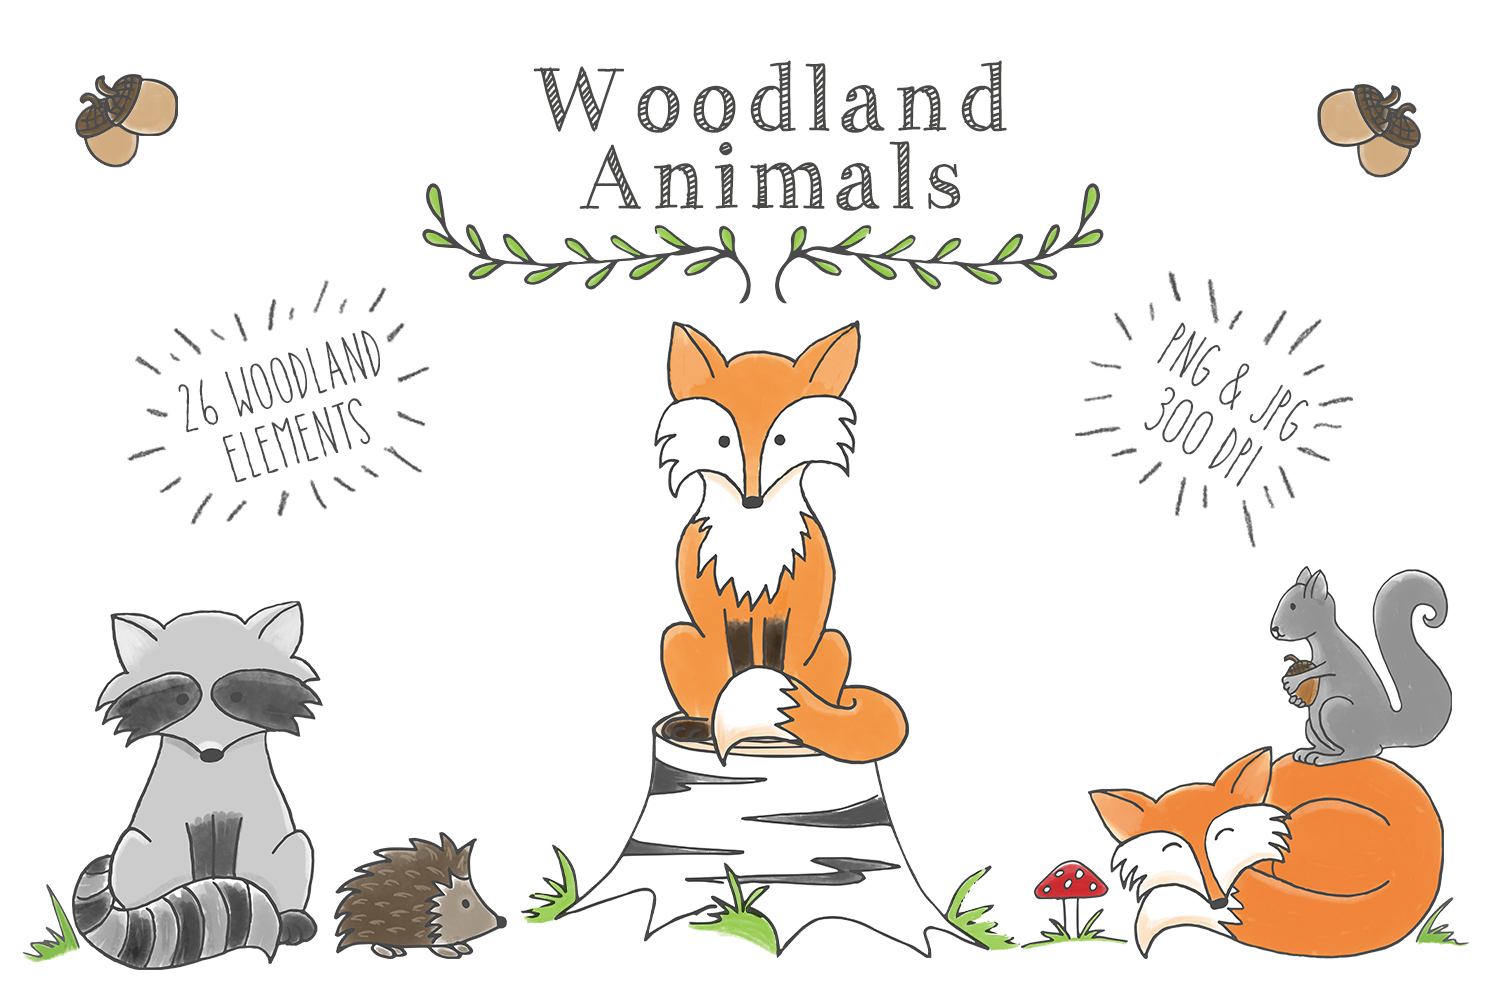 woodland clipart animal animals clip creatures graphics watercolor illustration illustrations baby forest theme drawing sensitive graphic creativemarket duran sunny designer